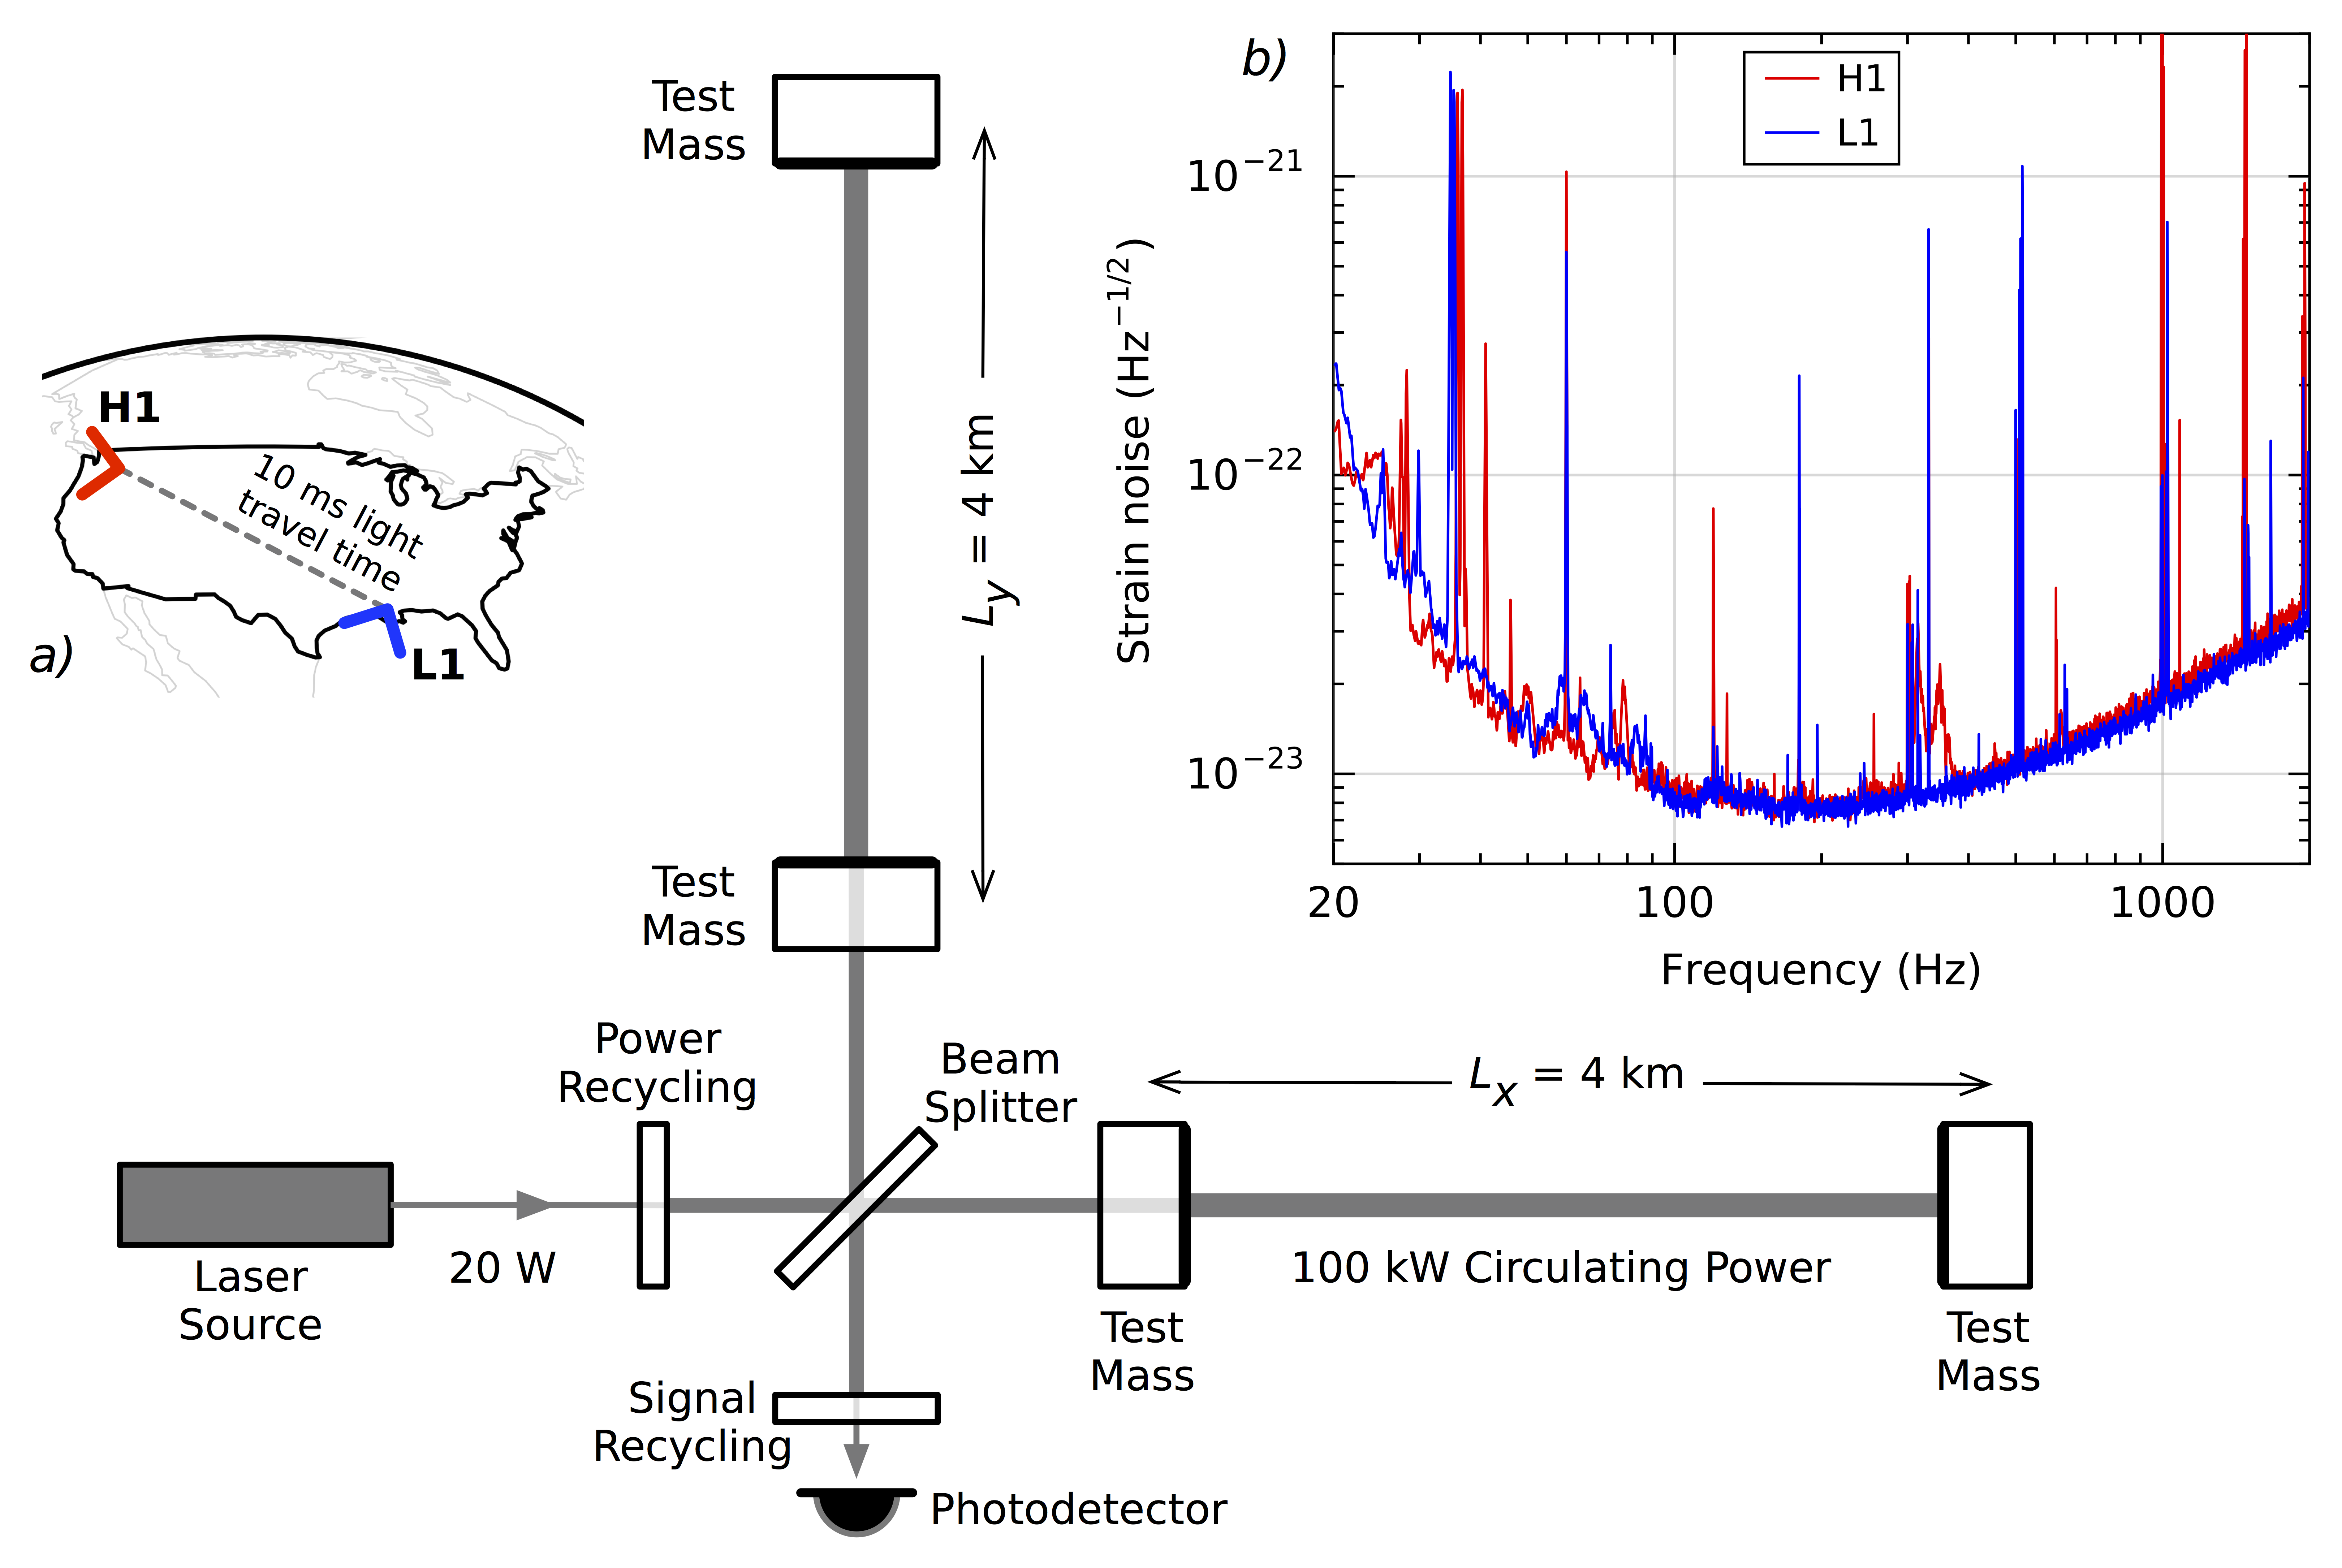 Ligo Scientific Collaboration The Science Of Lsc Research Diagram Above Is Peak 3dbs Which Shows That Filter Simplified An Advanced Detector